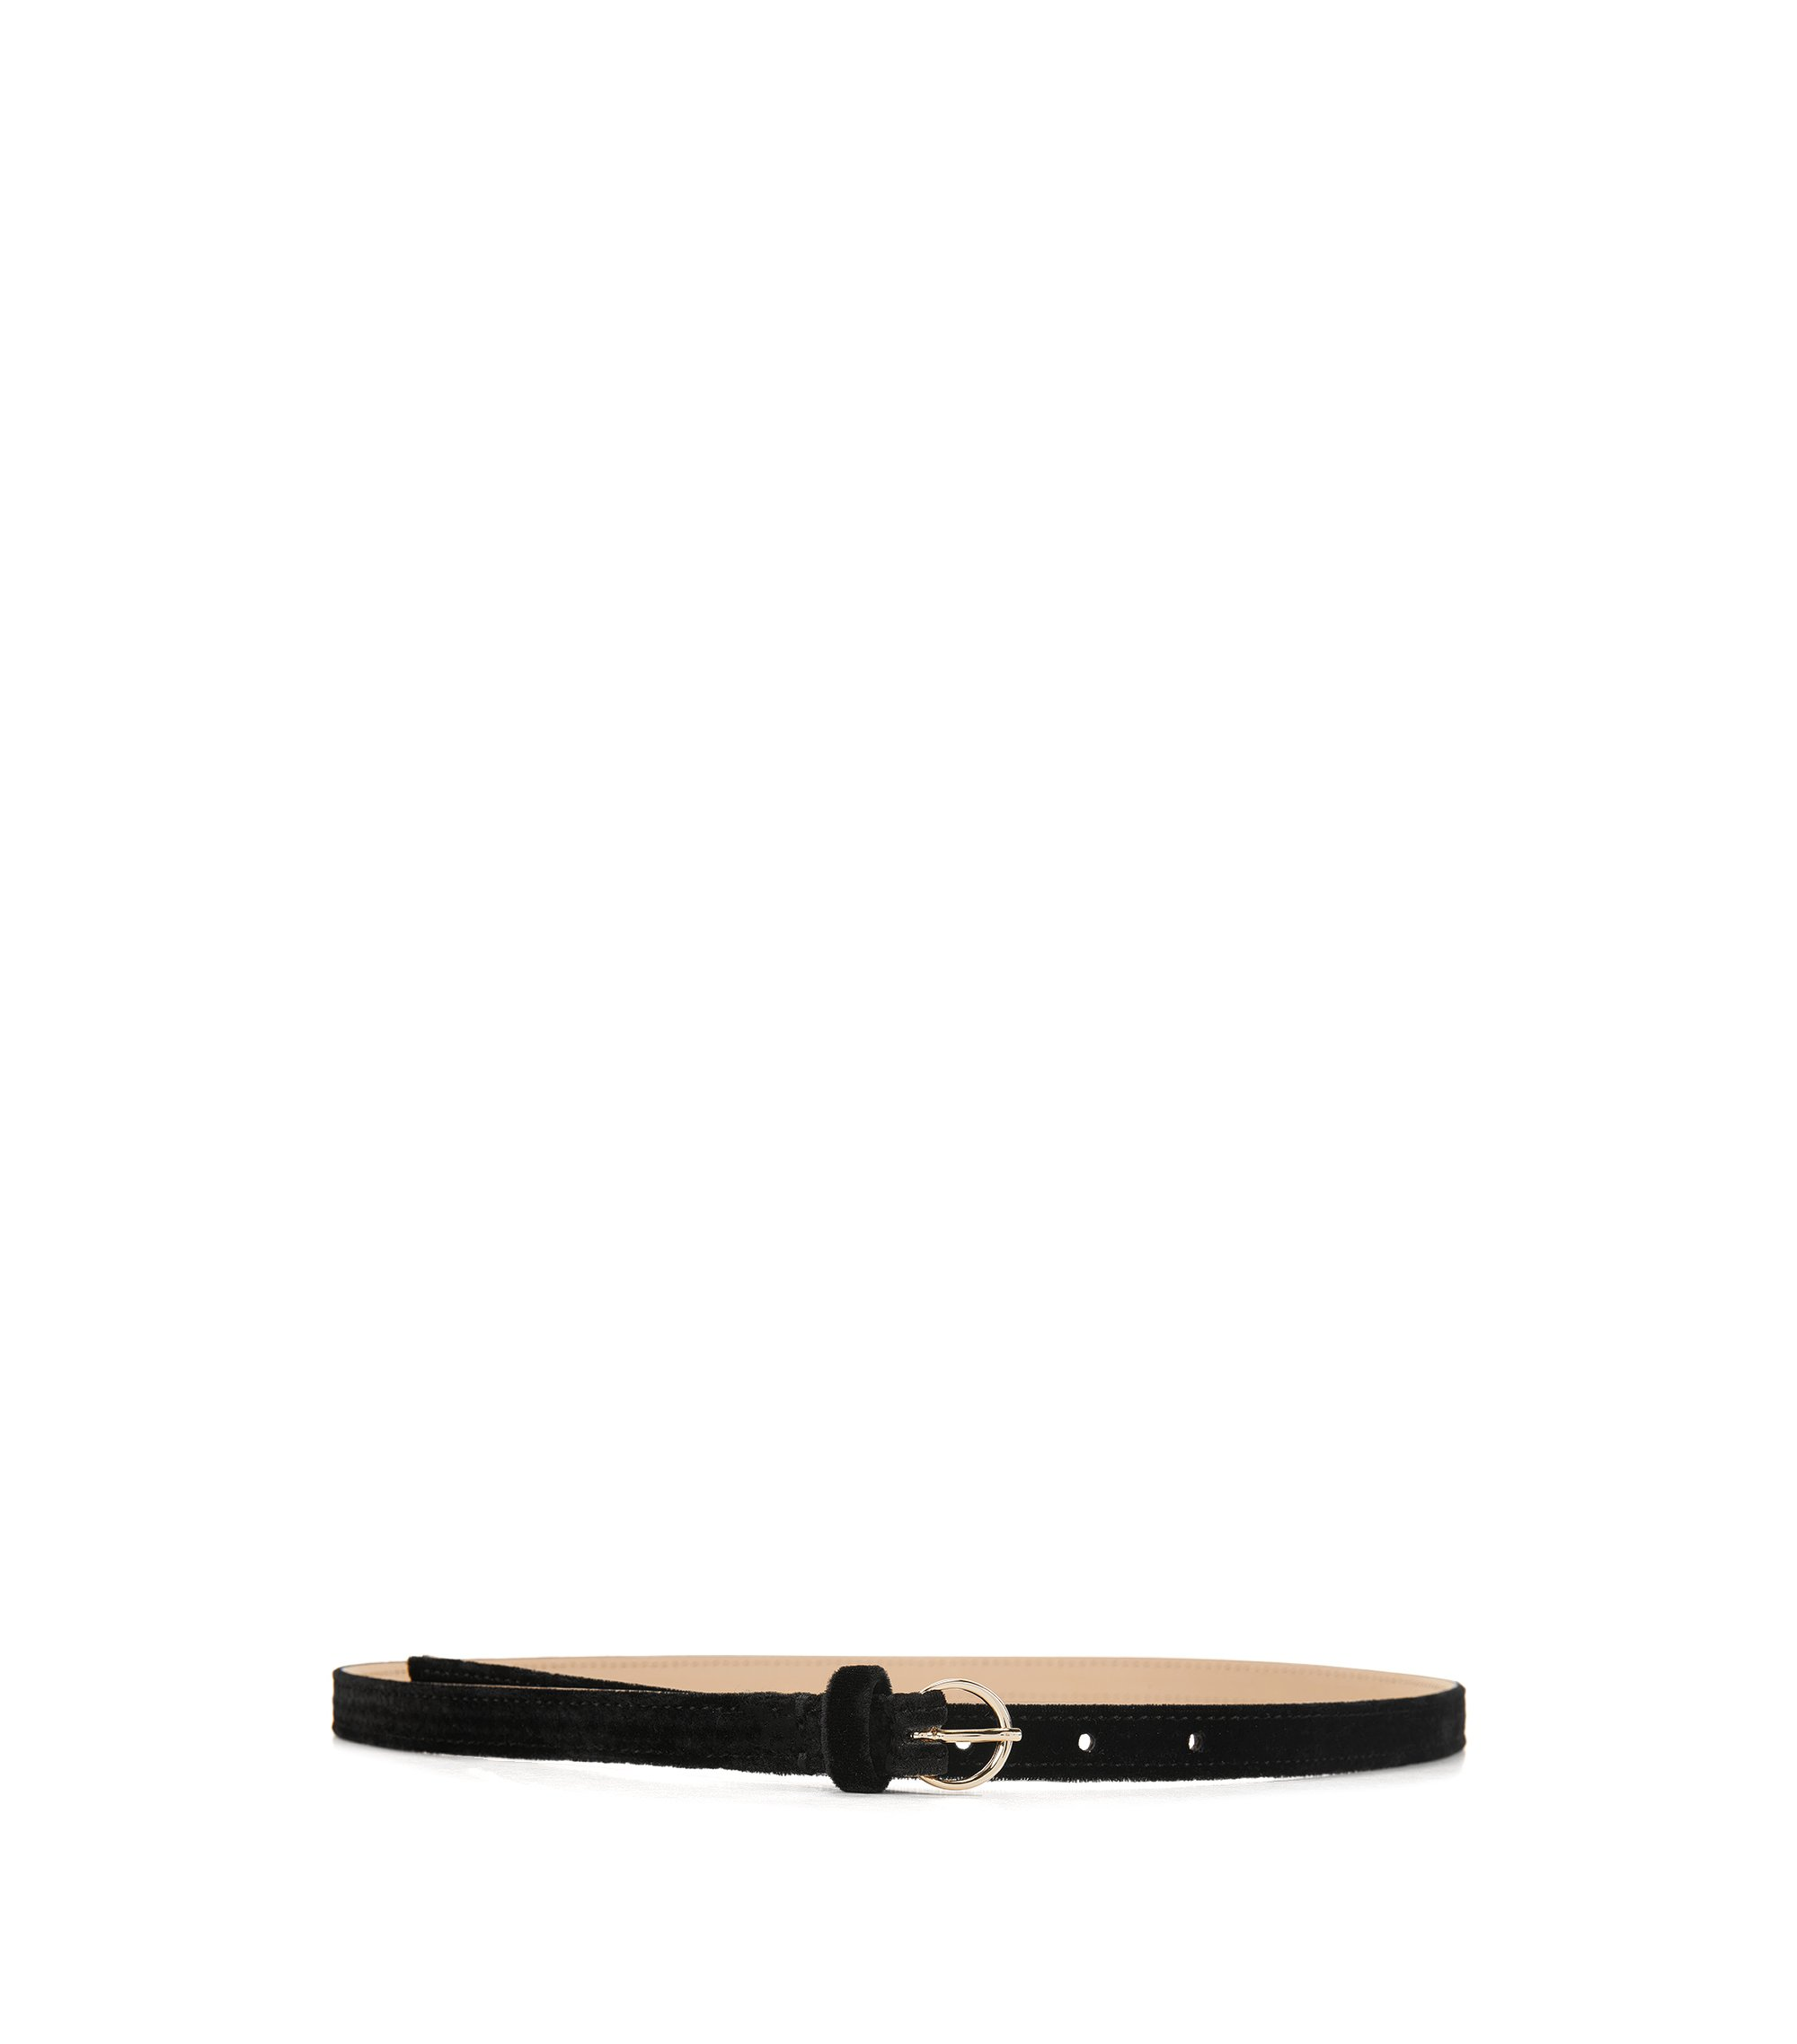 Velvet belt with round buckle, Black